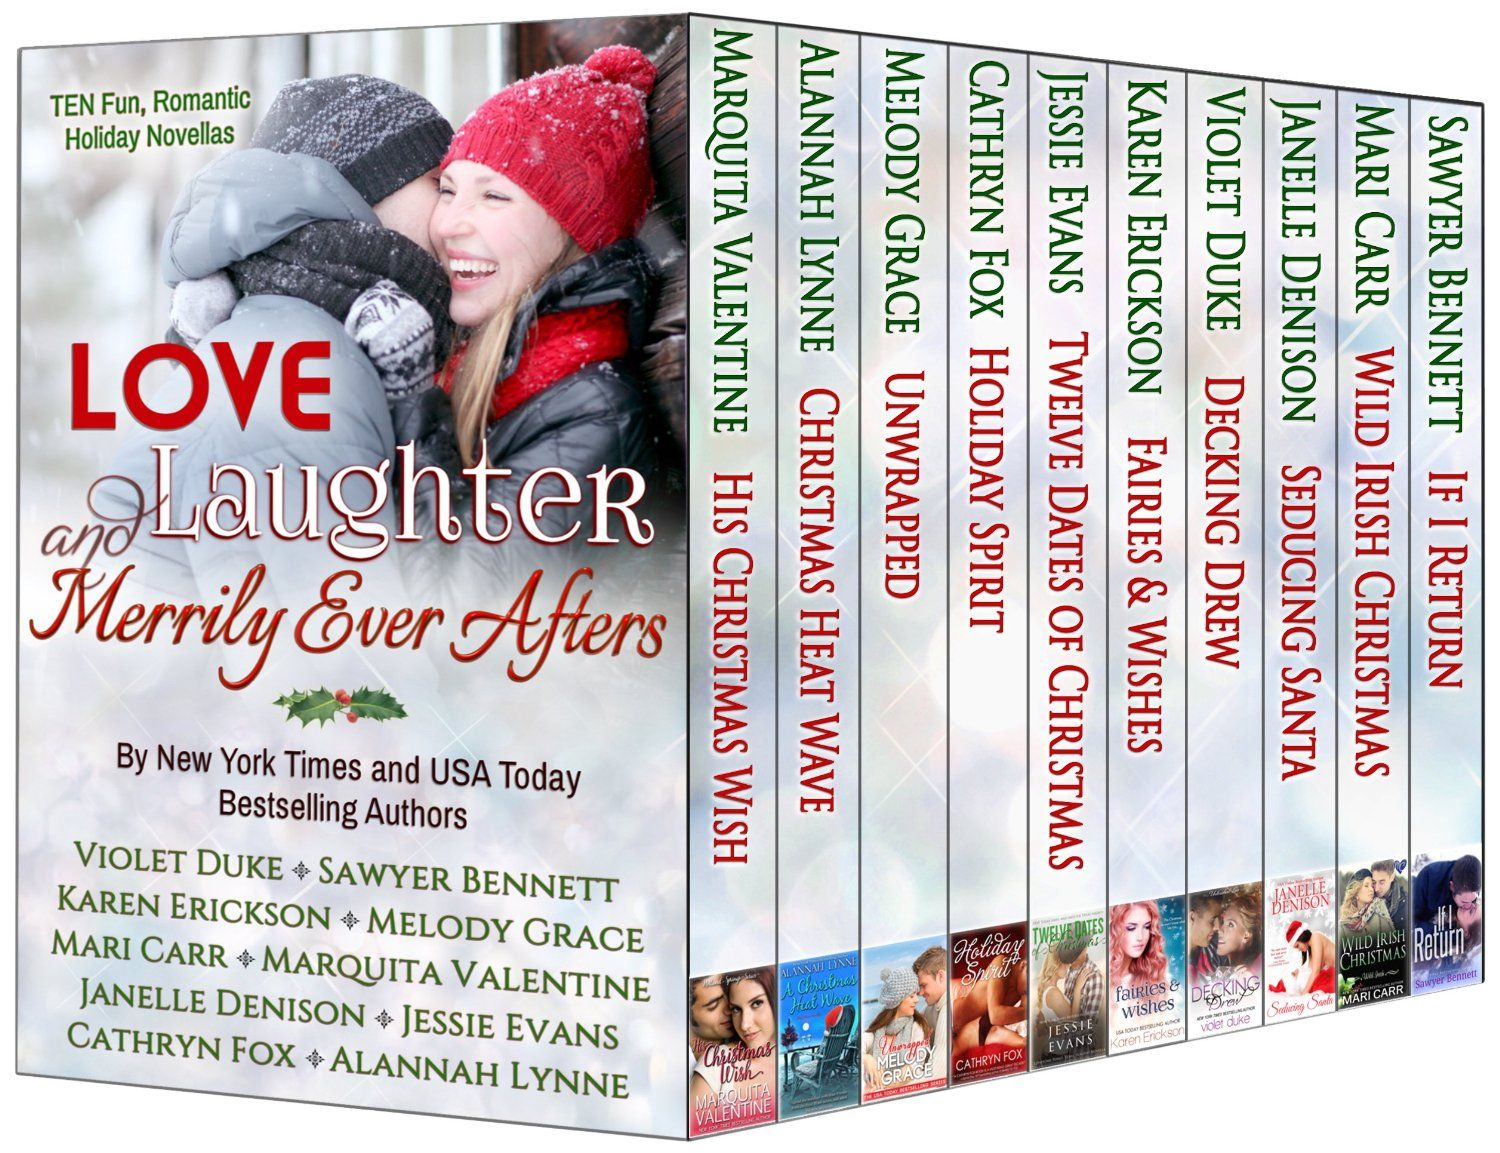 Love, Laughter, and Merrily Ever Afters (Ten Holiday Novellas by Ten NYT & USA Today Bestselling Authors) - Kindle edition by Violet Duke, Sawyer Bennett, Melody Grace, Karen Erickson, Janelle Denison, Cathryn Fox, Jessie Evans, Alannah Lynne, Mari Carr, Marquita Valentine. Literature & Fiction Kindle eBooks @ Amazon.com.